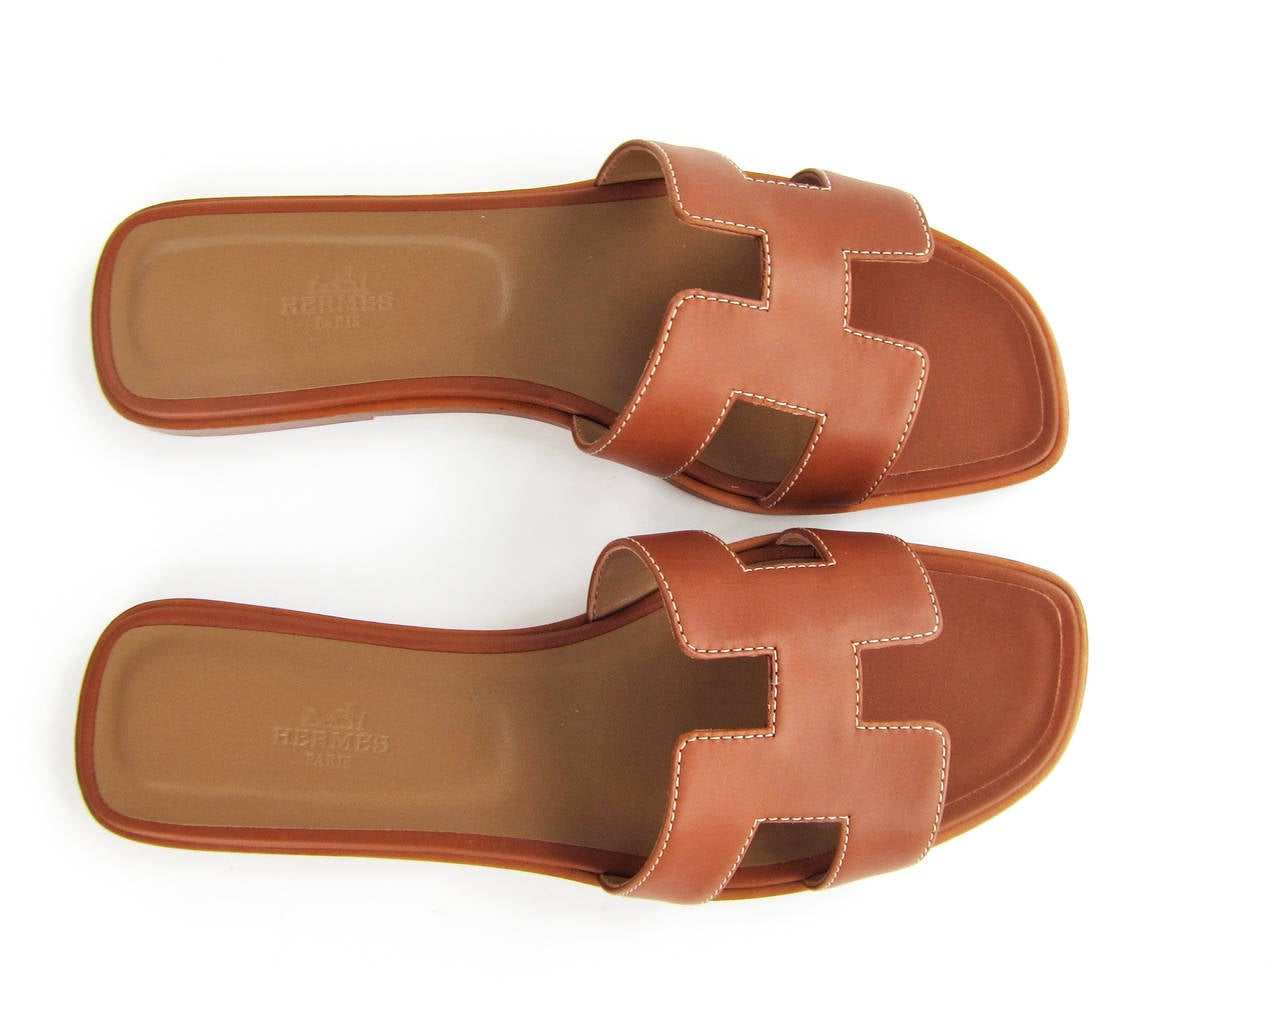 Hermes Gold Oran Box Leather Sandals Size 40 Summer 4